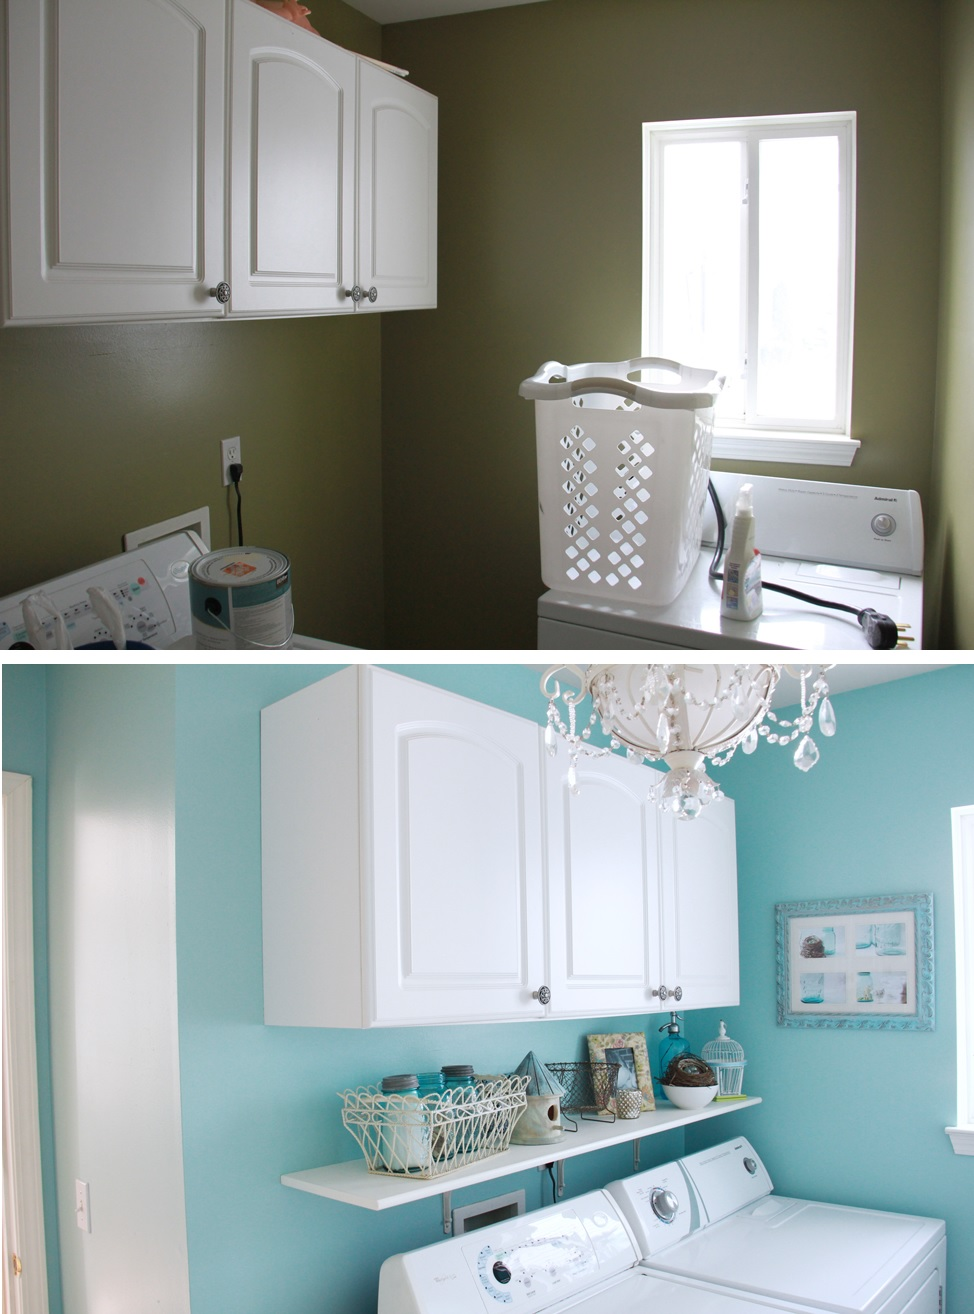 Inspiring Laundry Room Makeover Ideas With Amazing Results on Amazing Laundry Rooms  id=21090